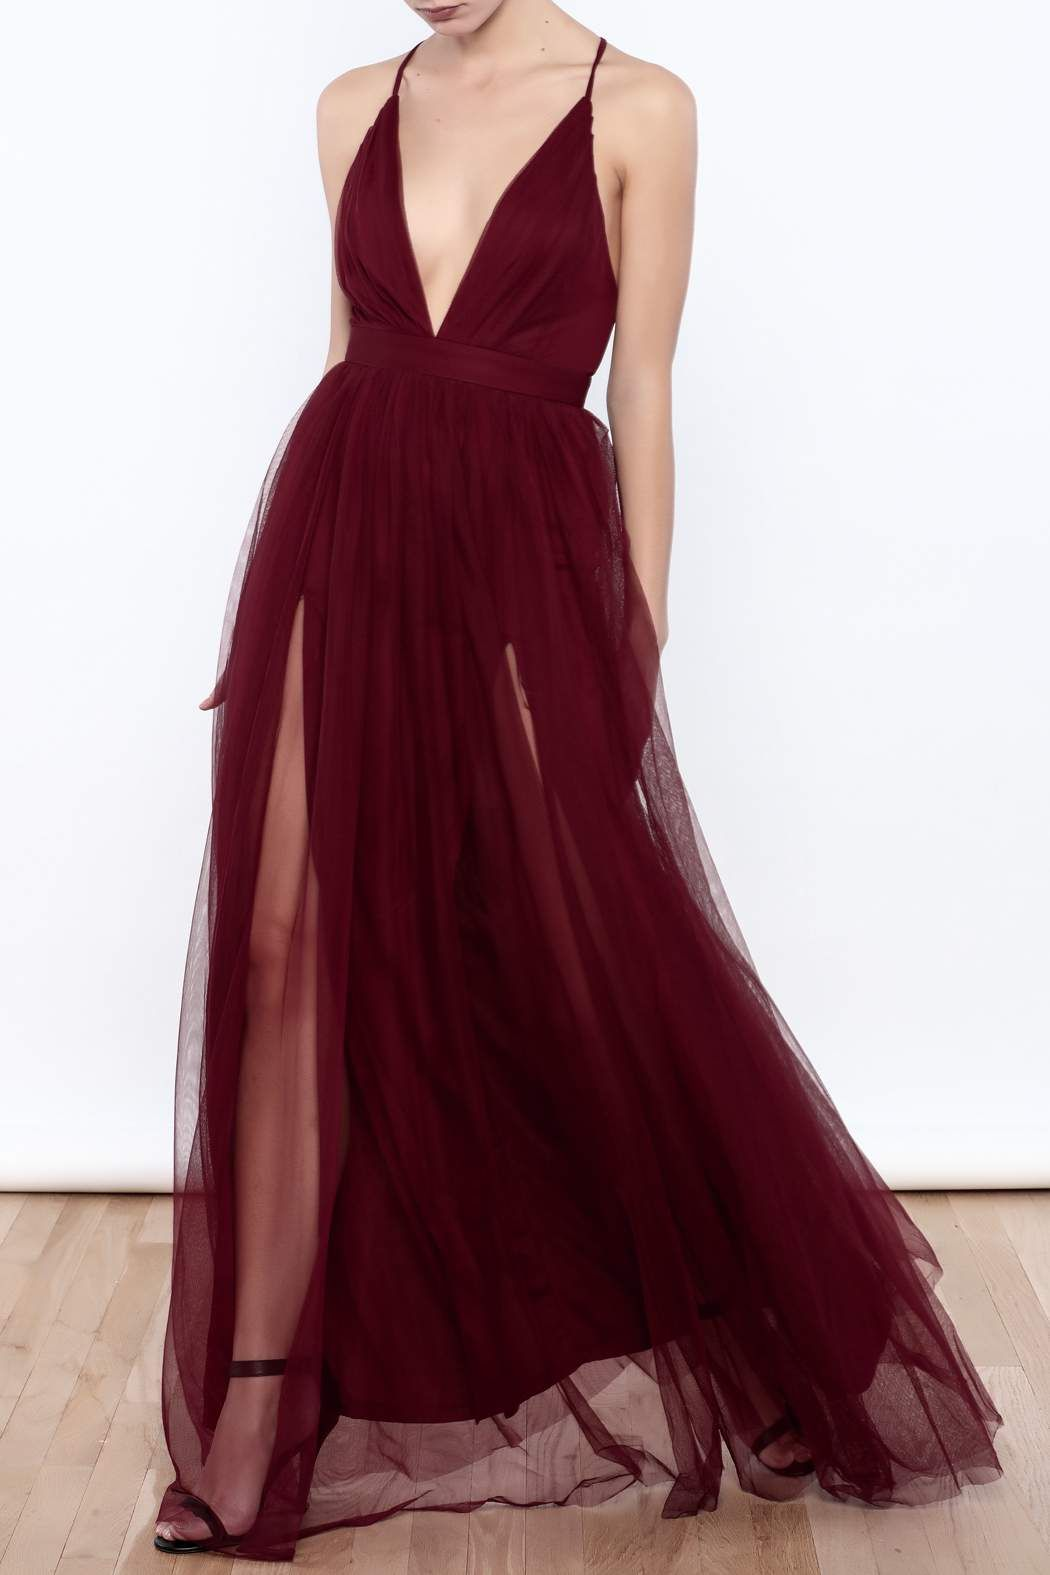 4c2a4324f8 Deep v-neck dress with a layered tulle skirt, crisscross back straps and a  zipper closure. Tulle Maxi Dress by luxxel. Clothing - Dresses - Maxi  Manhattan, ...